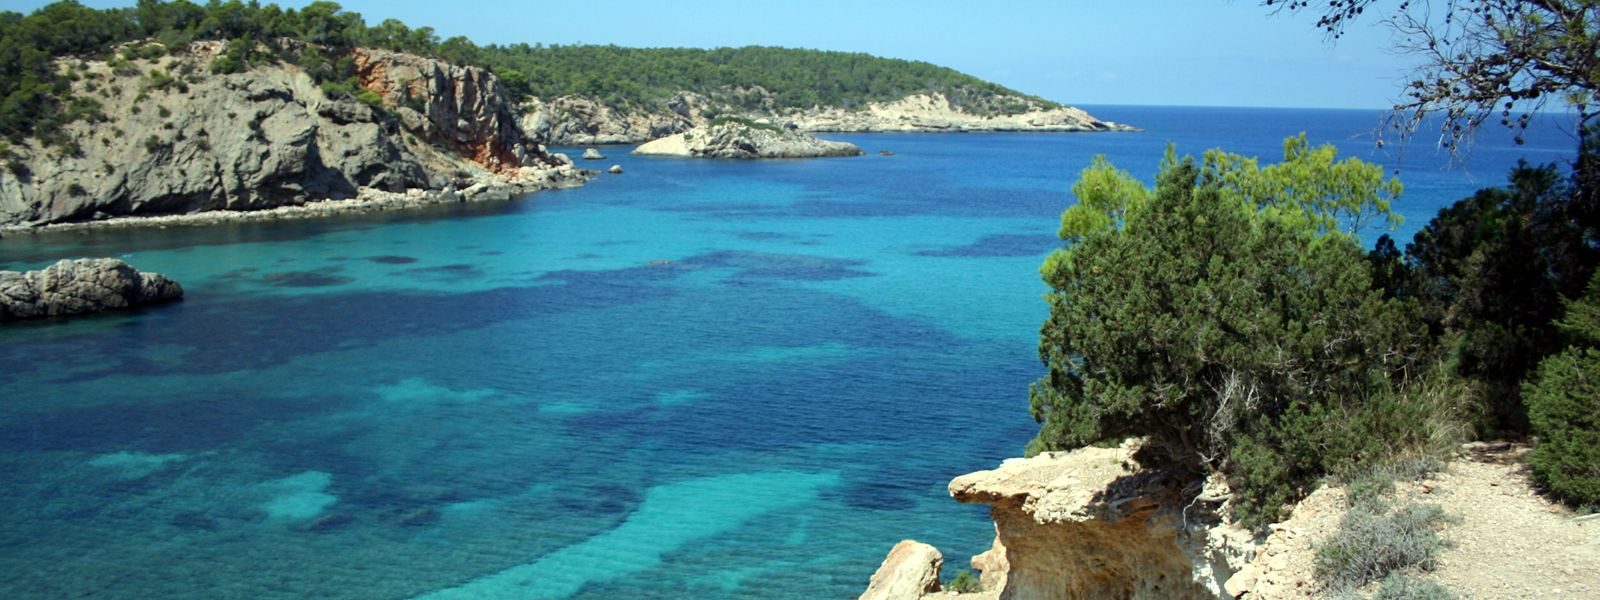 San Antonio Ibiza beaches sightseeing